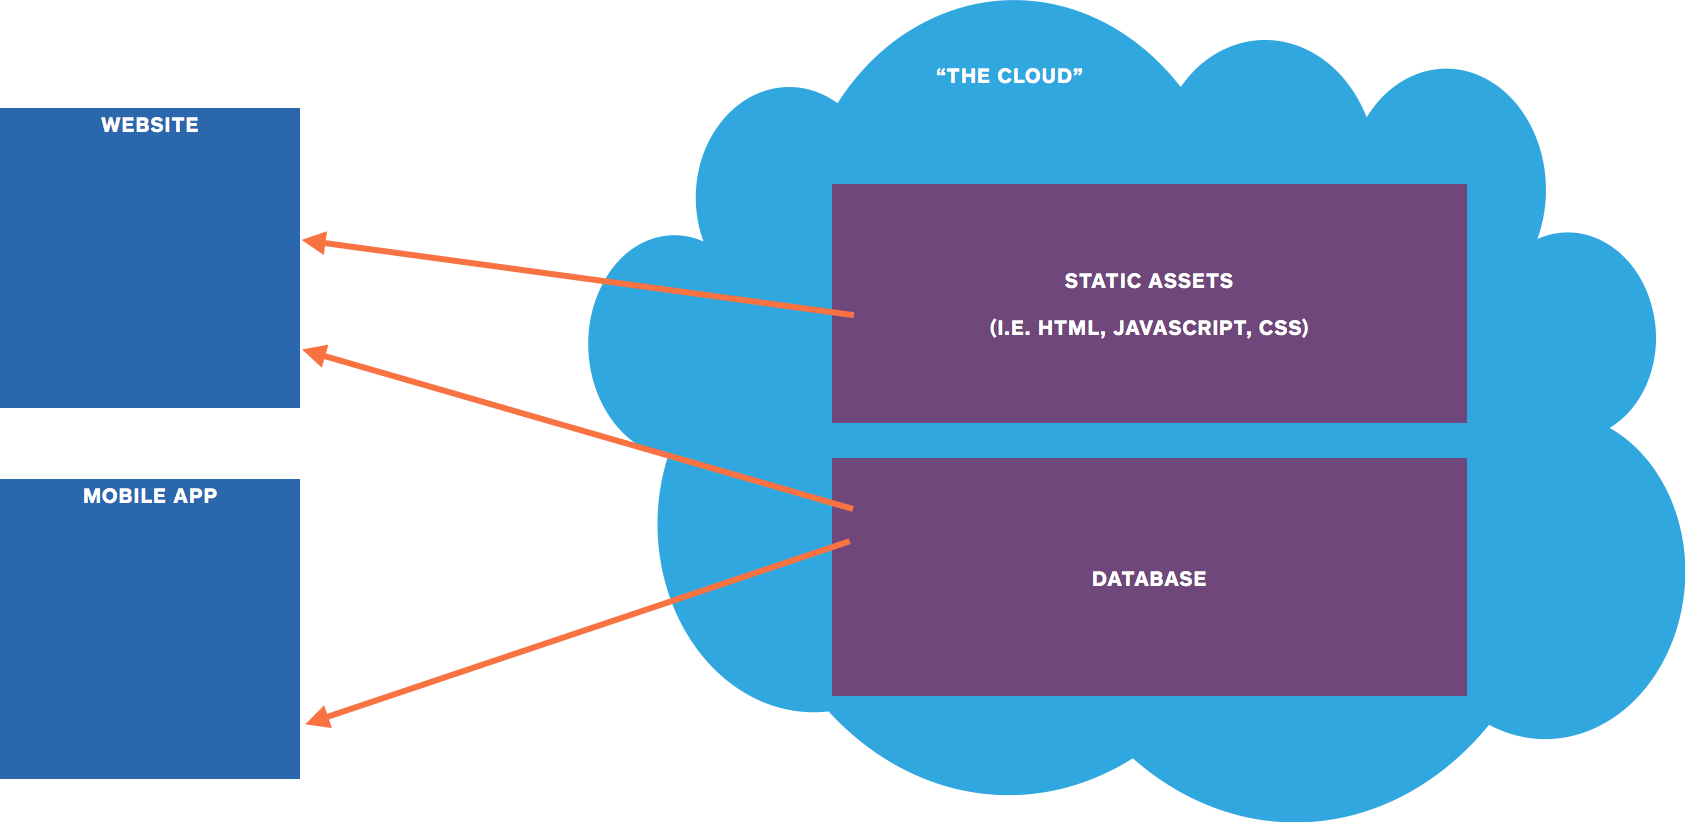 Backend in the Cloud Diagram